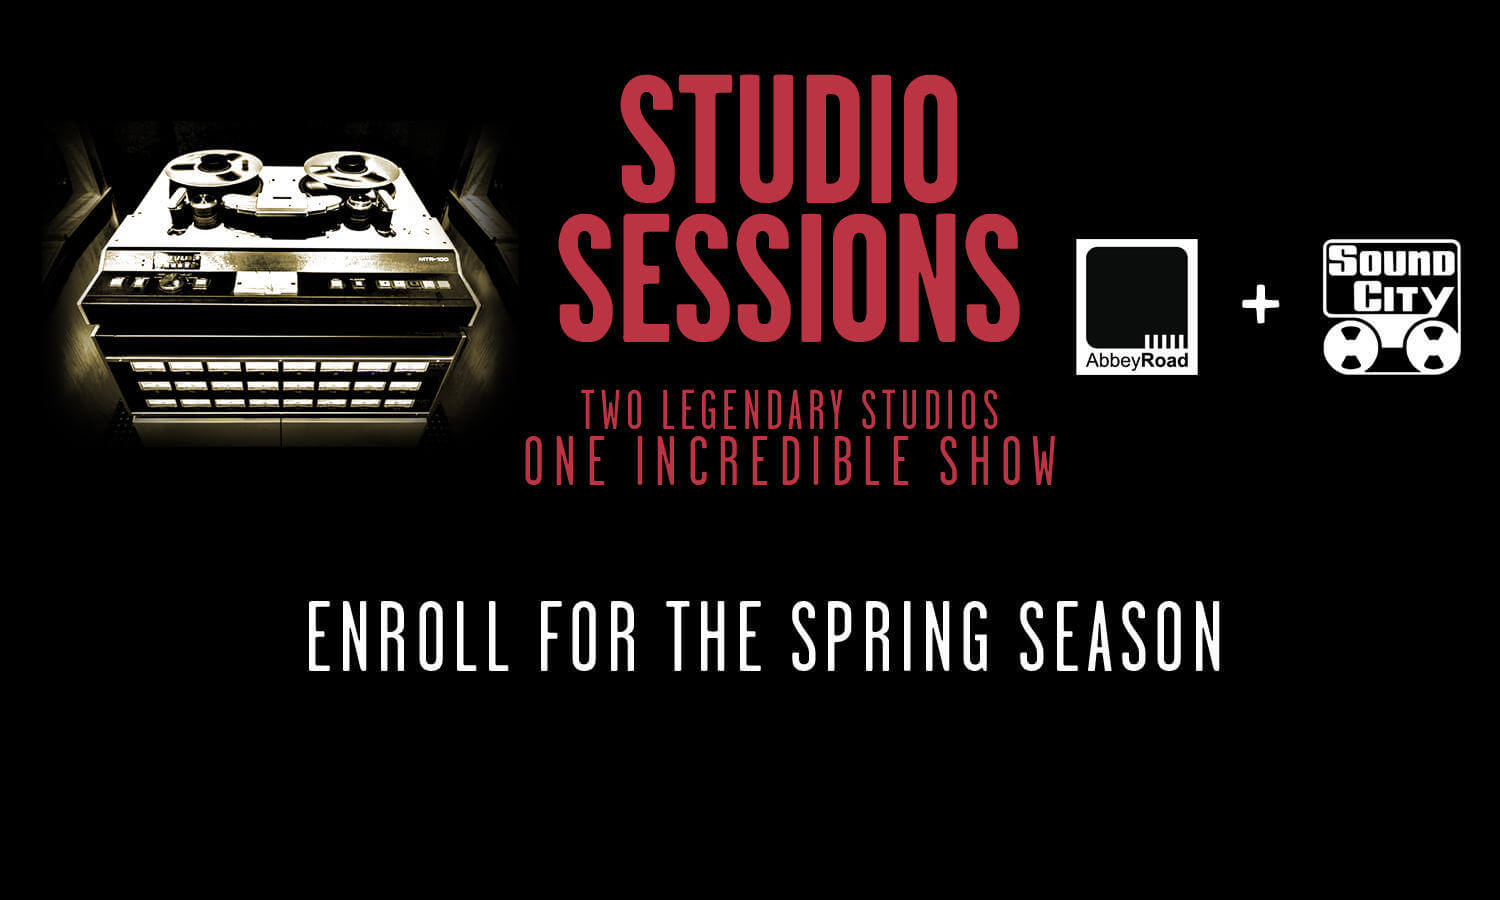 Enroll for the Spring 2015 season! Abbey Road Studios vs. Sound City Studios!